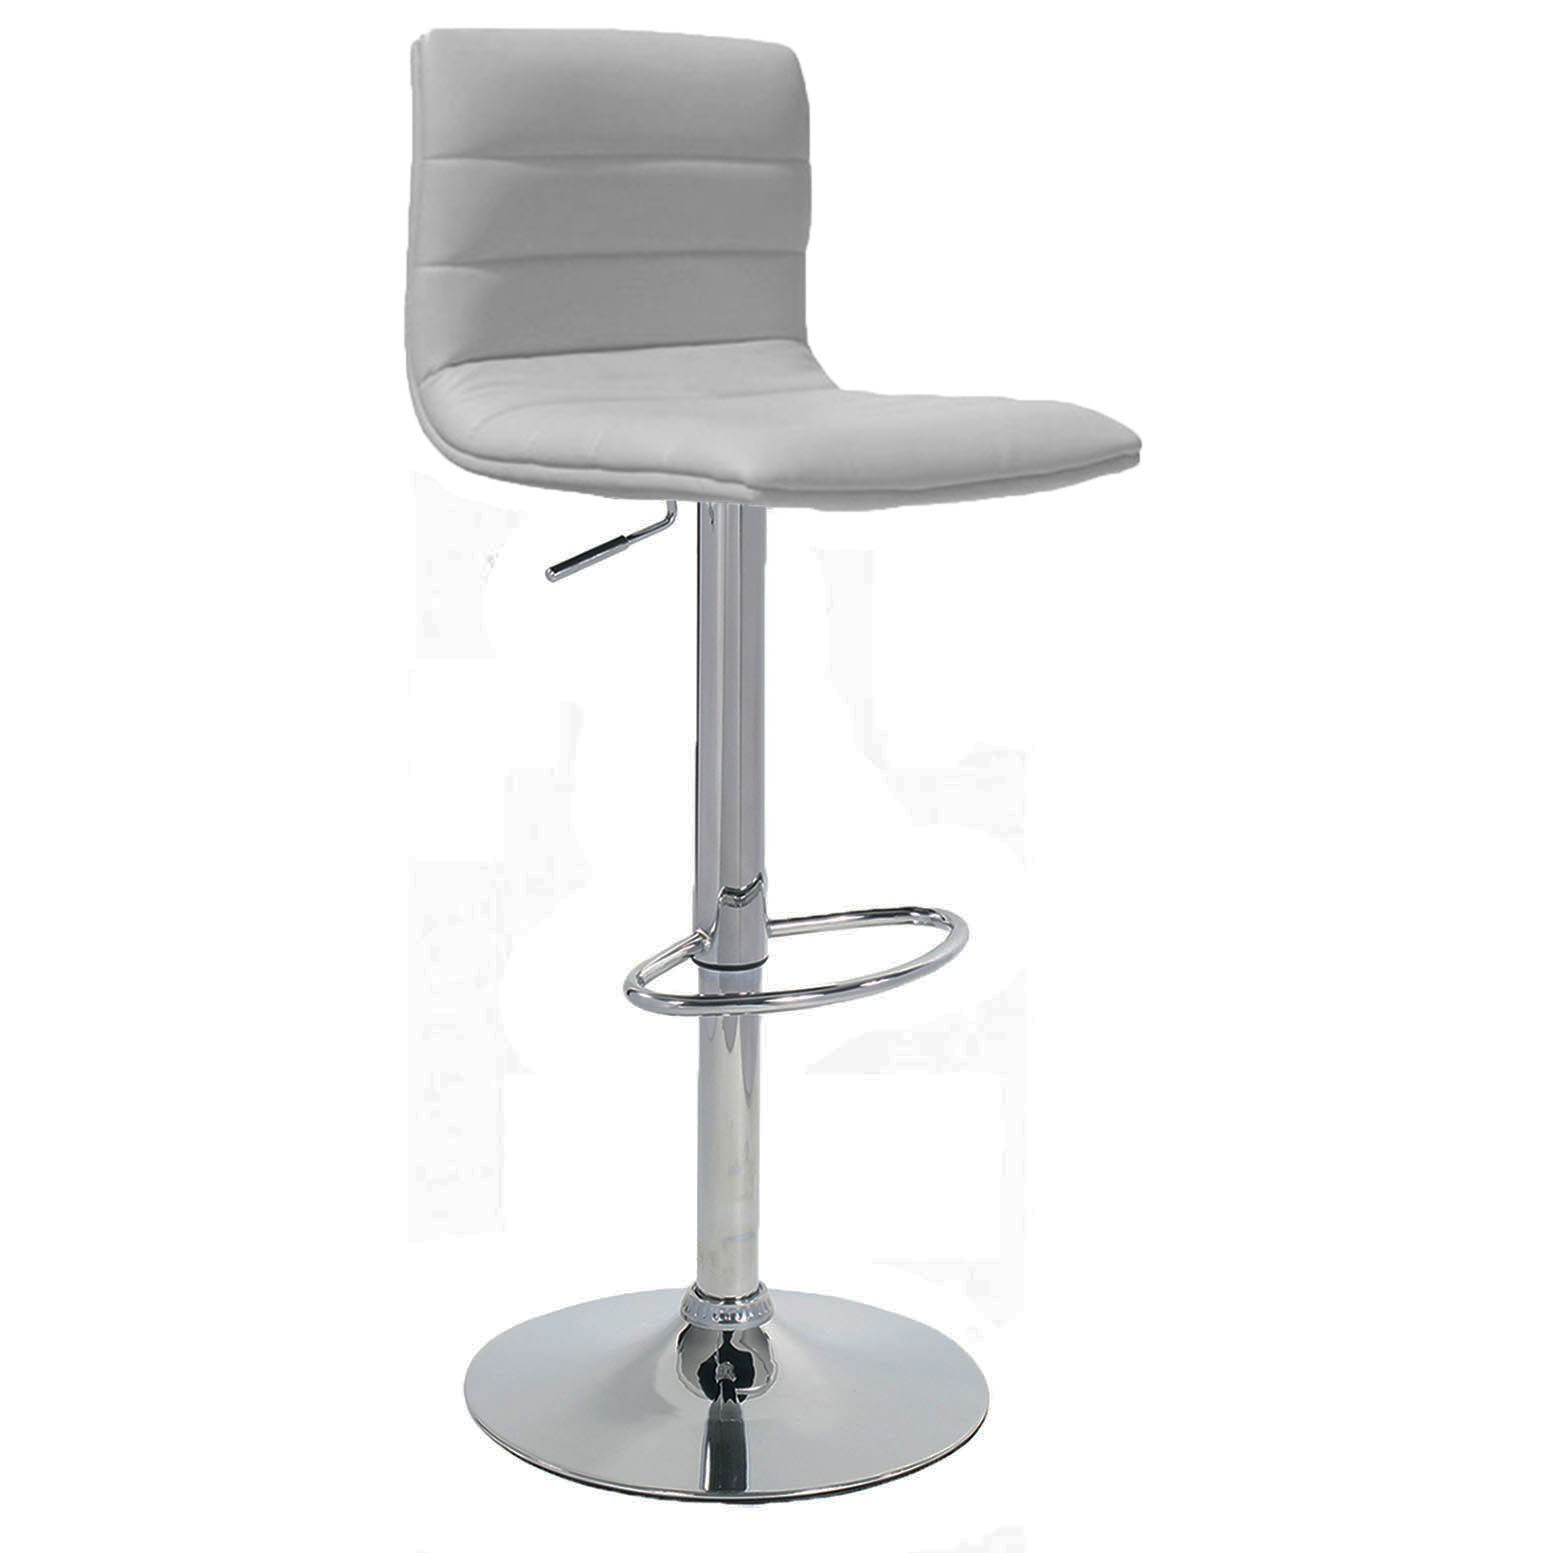 Aldo Bar Stool White Size X 390mm X 390mm